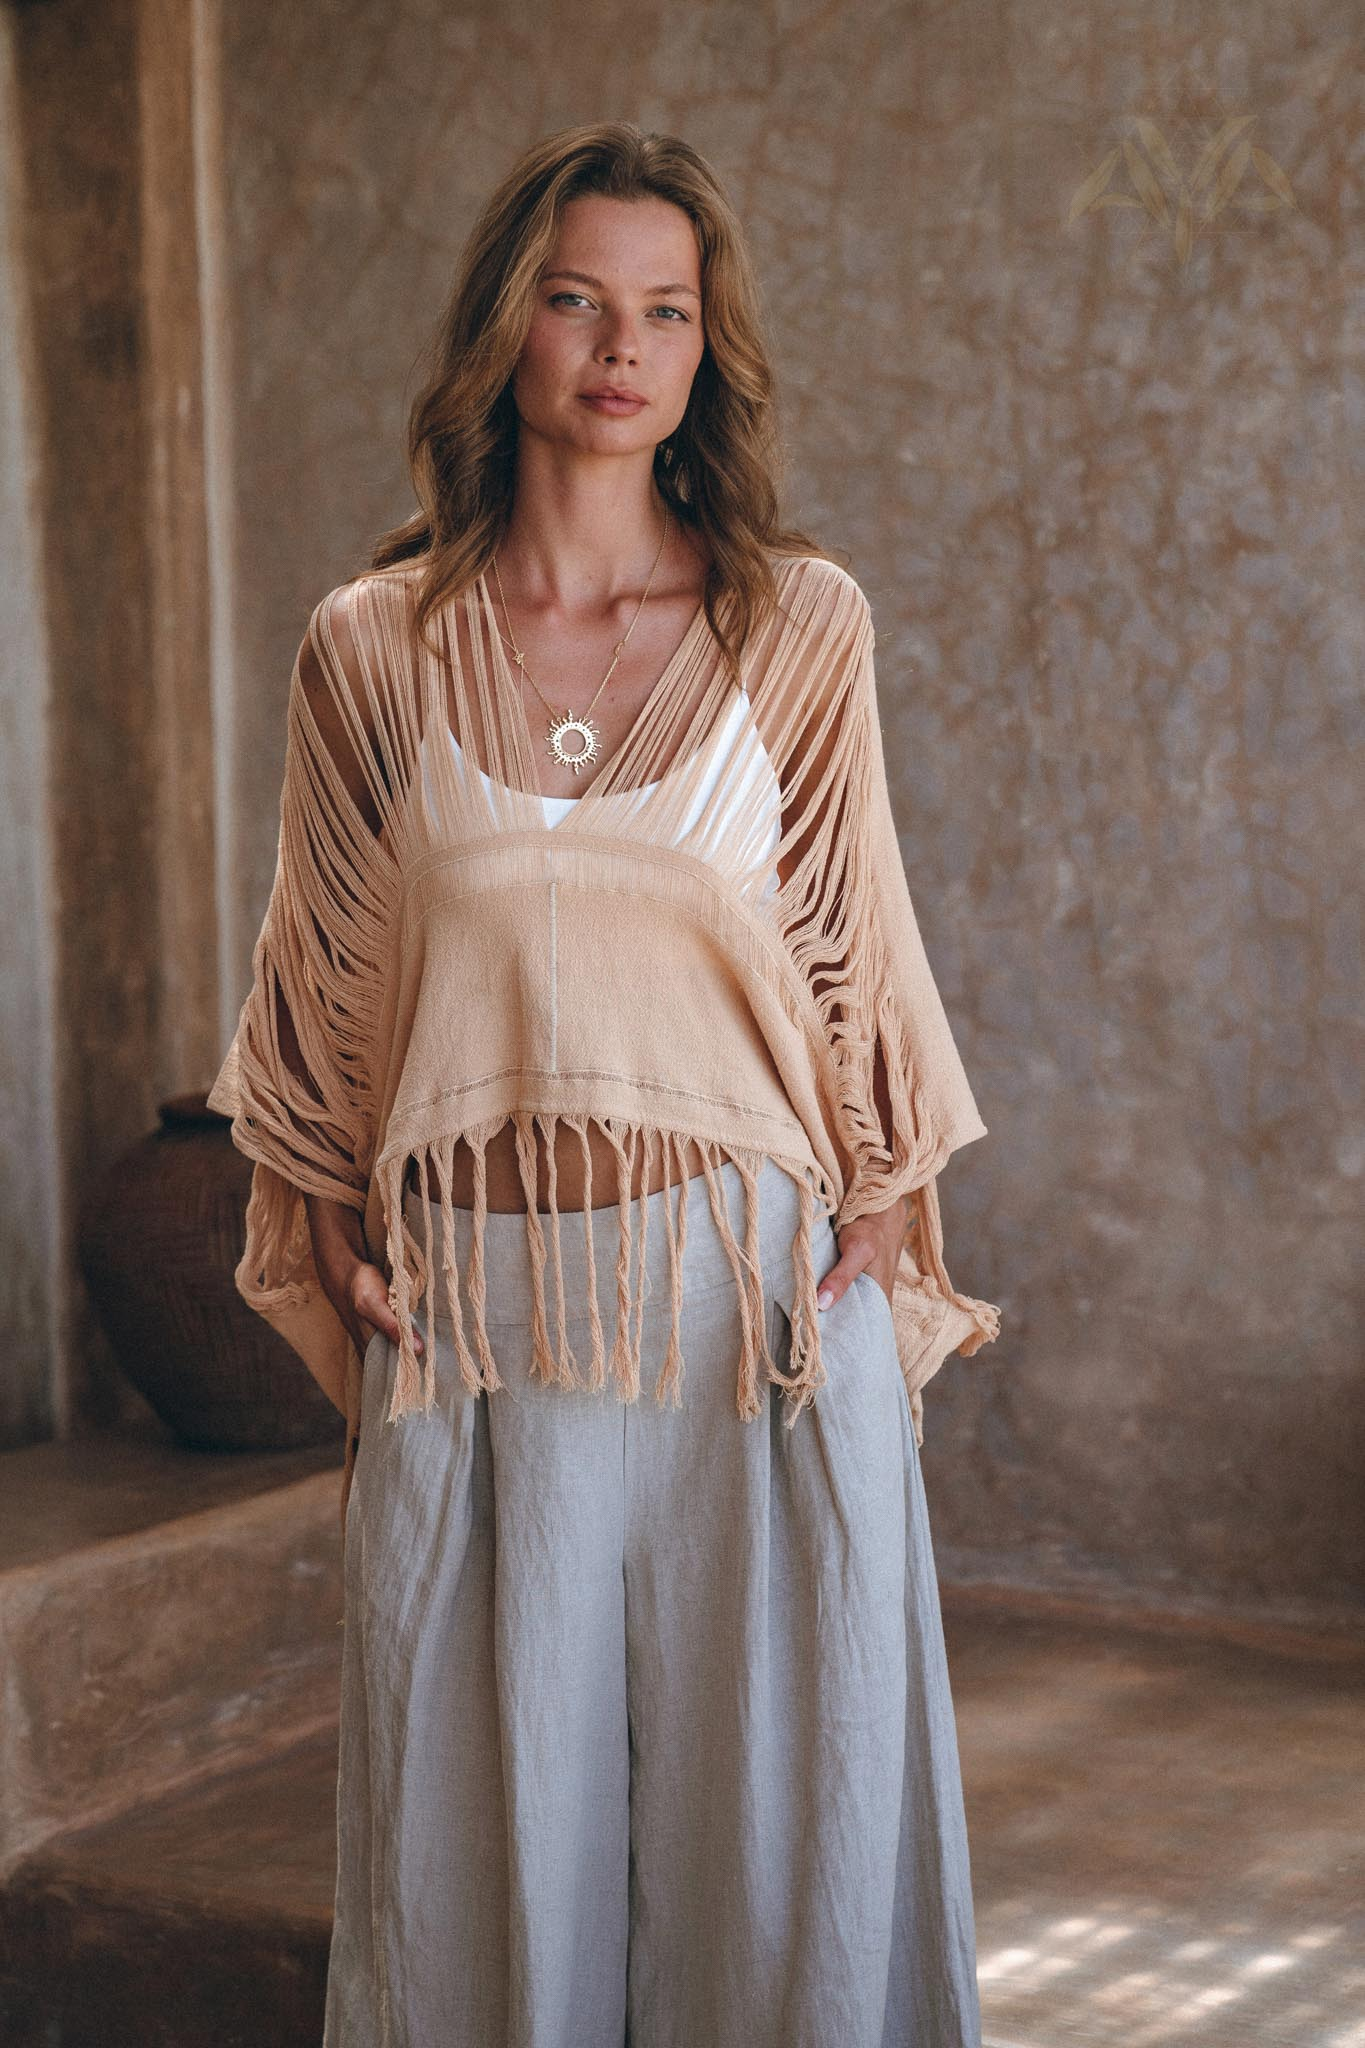 New! Boho Top • Bohemian Top • Boho Cover Up Women • Hand Loomed Cotton Blouse - AYA Sacred Wear